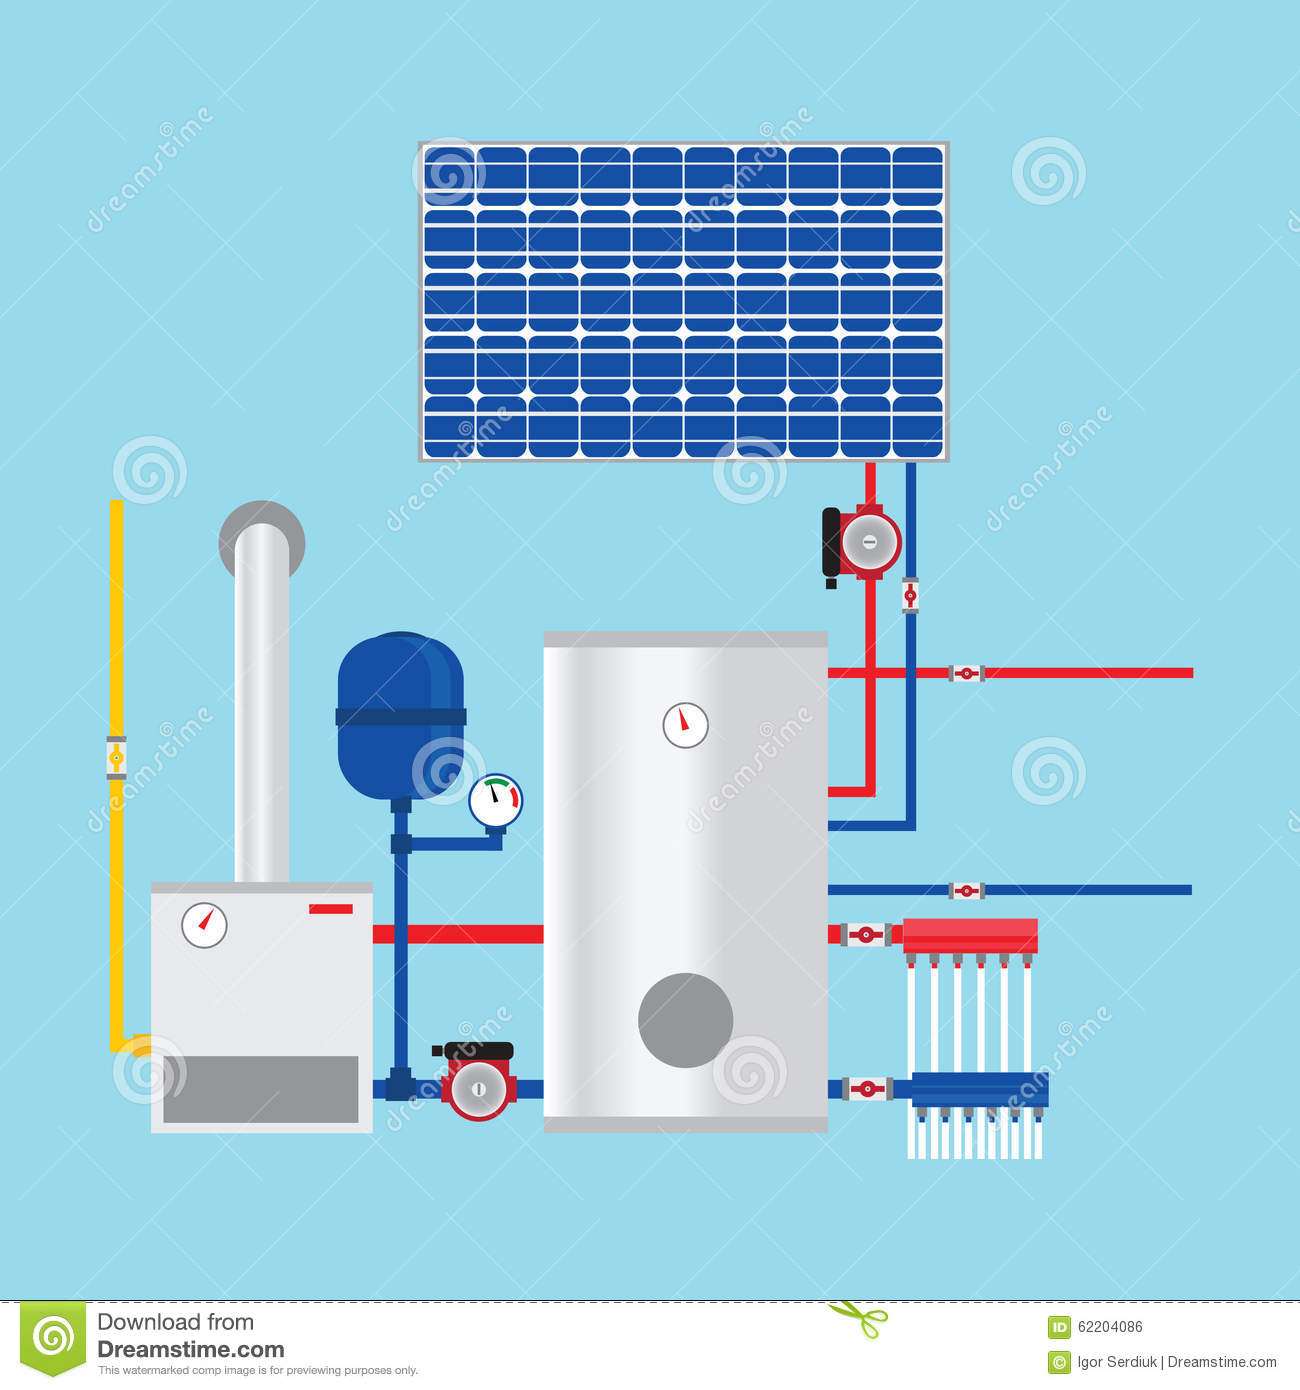 gas boiler and solar panels eco house stock vector. Black Bedroom Furniture Sets. Home Design Ideas